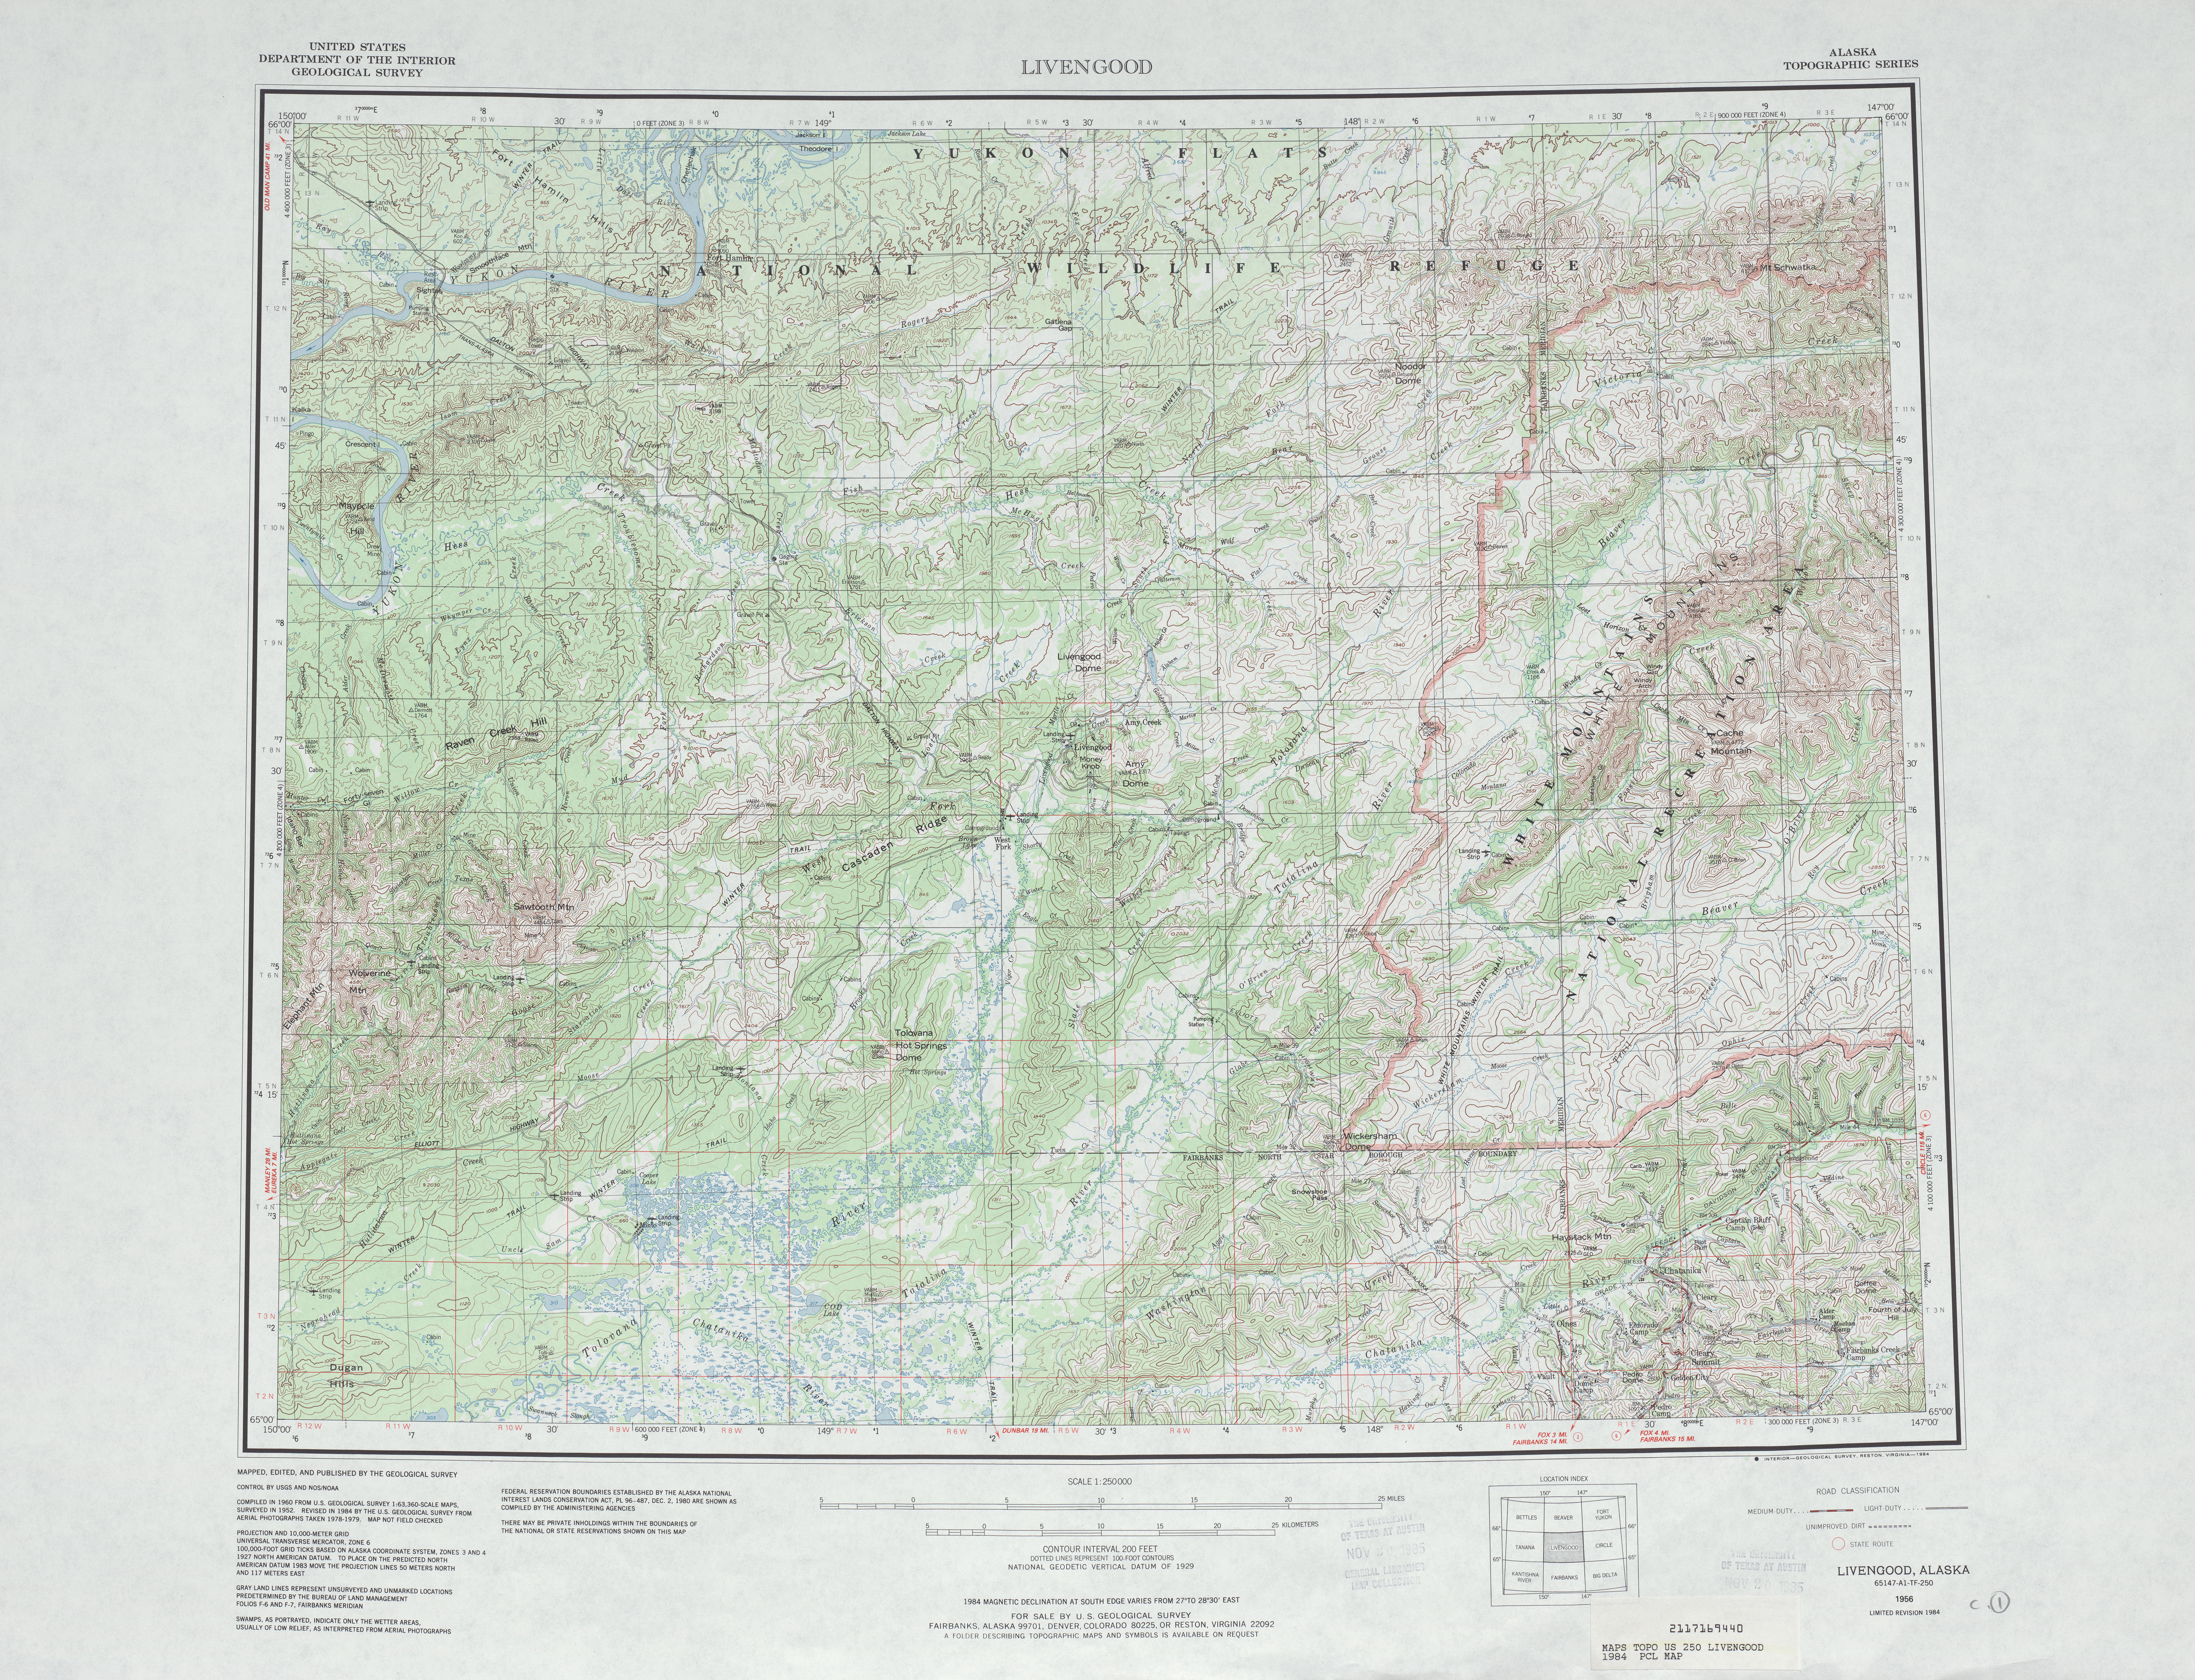 Livengood Topographic Map Sheet, United States 1984